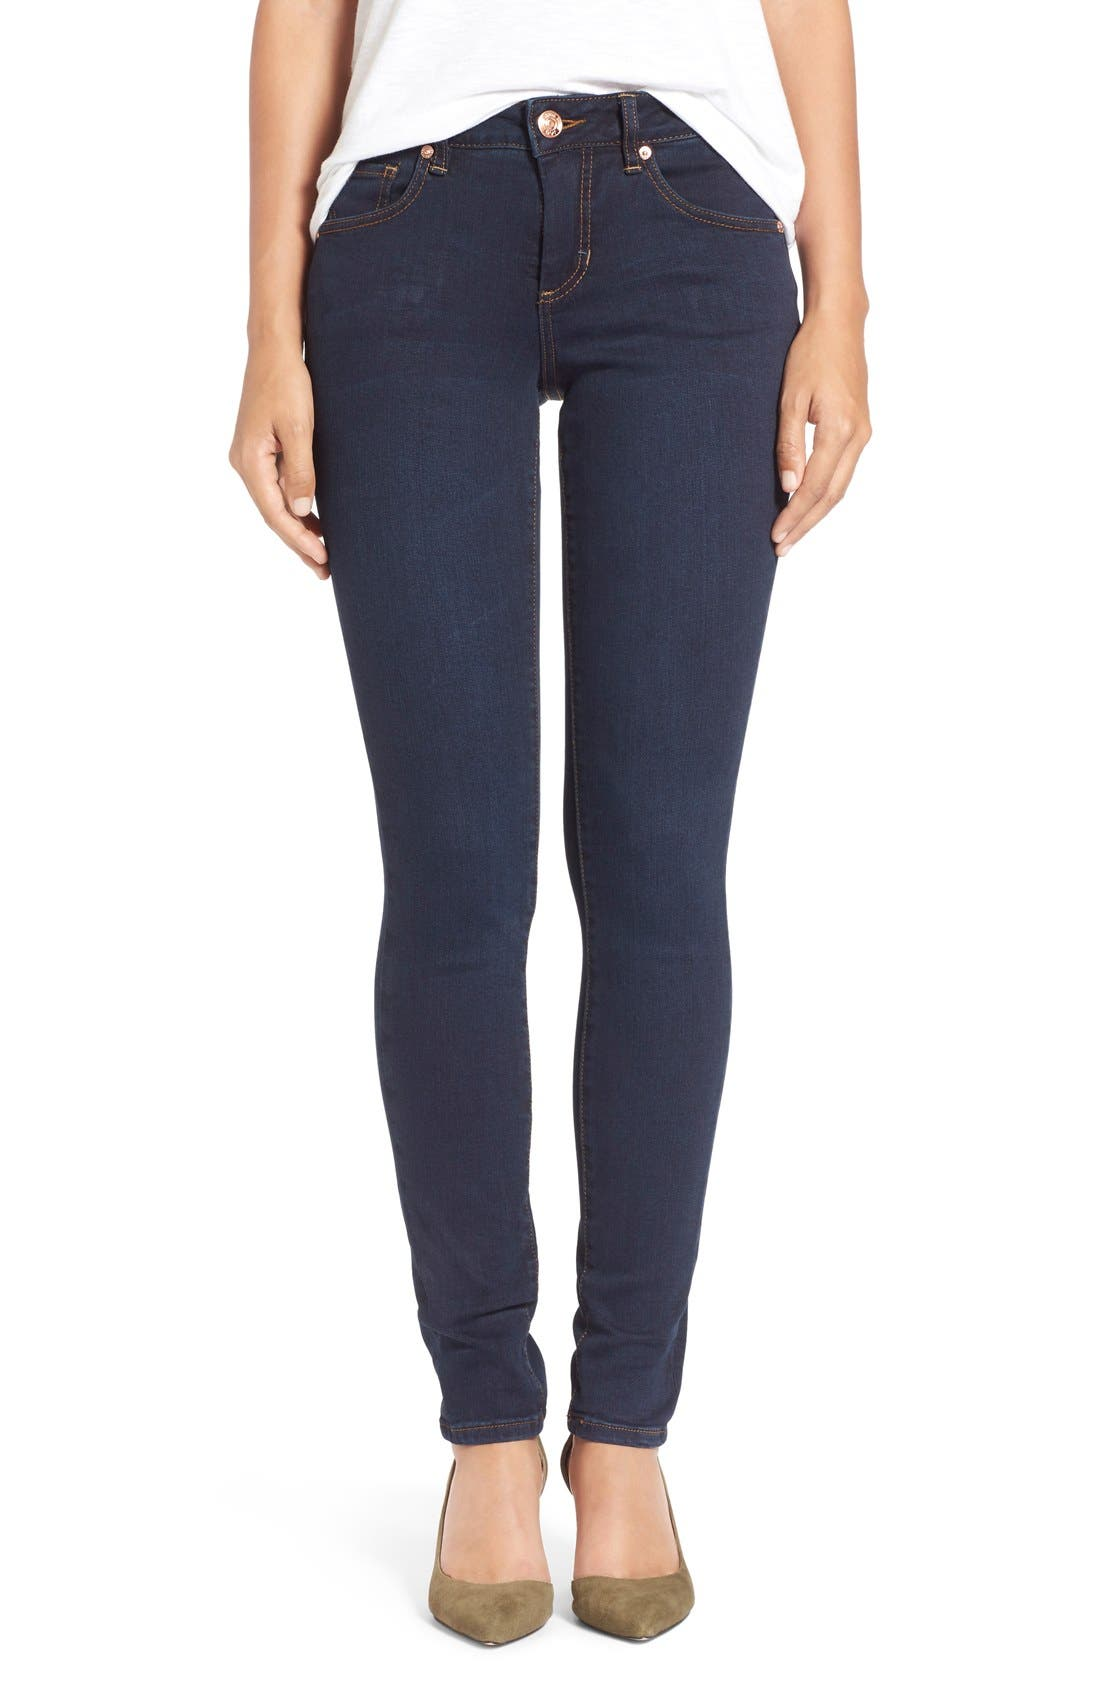 Alternate Image 1 Selected - Jag Jeans 'Westlake' Stretch Skinny Jeans (Indigo Steel)